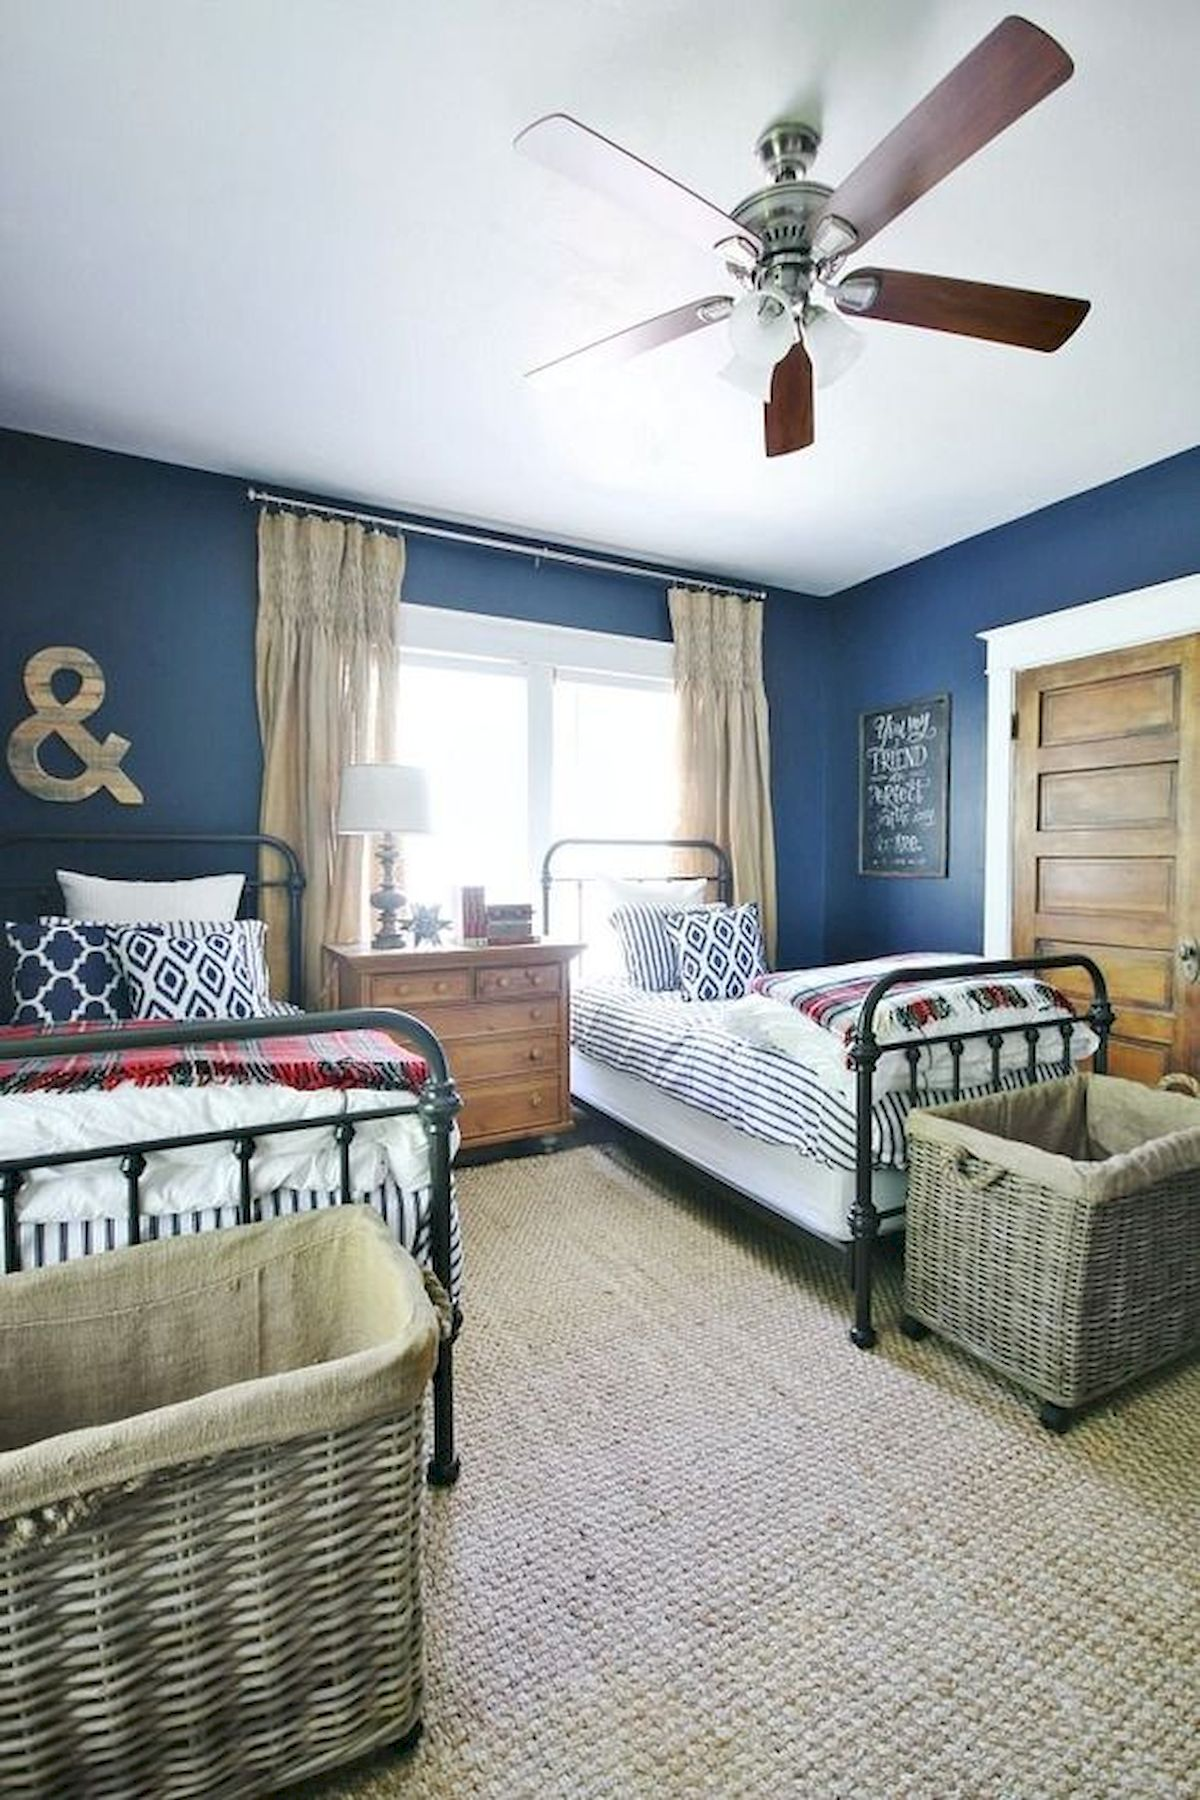 45 Cool Boys Bedroom Ideas to Try at Home (9)